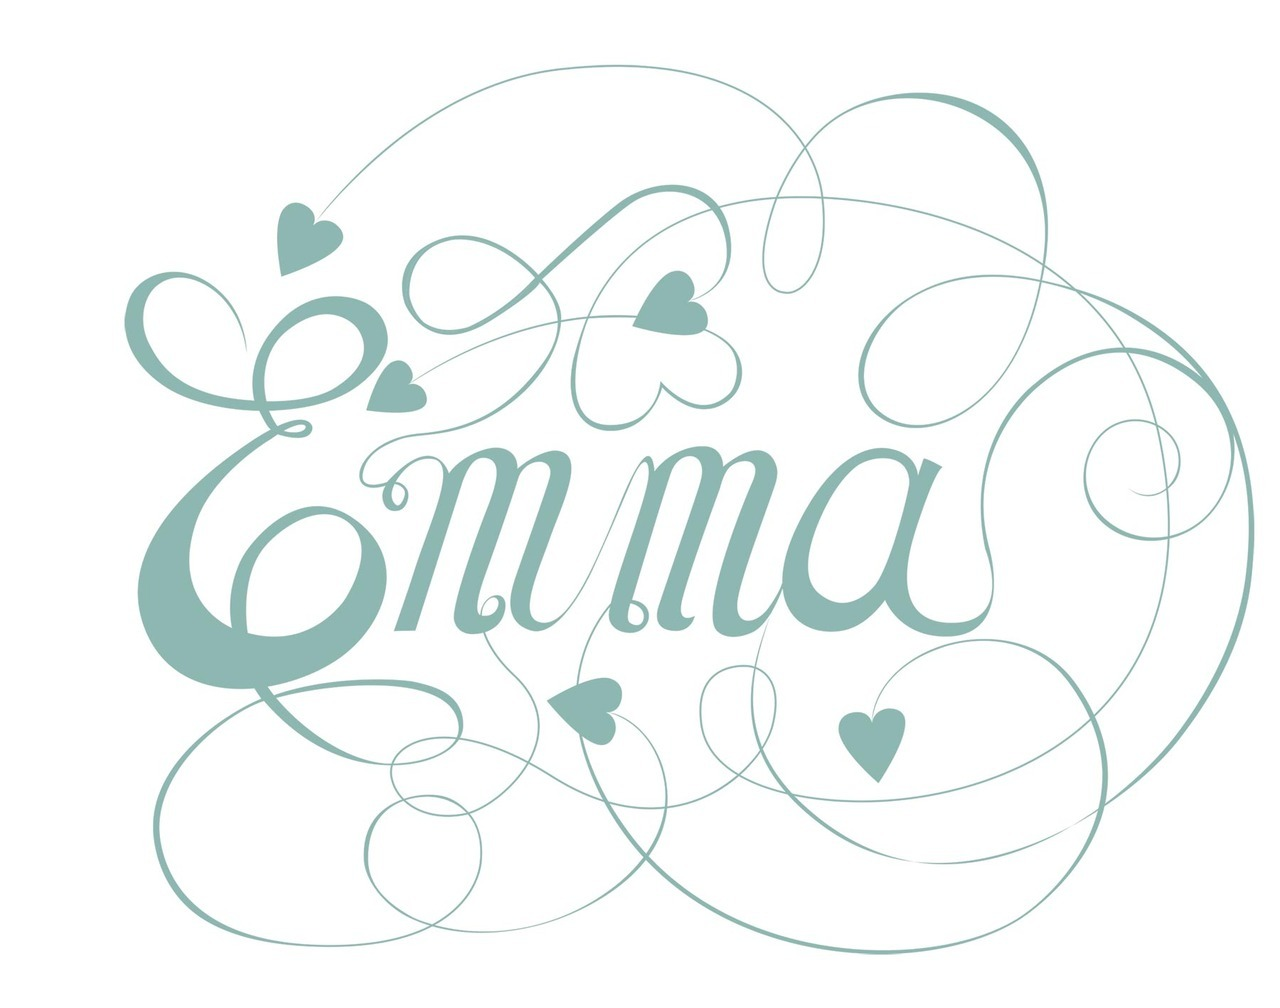 Script type inspired by Jane Austen's Emma.